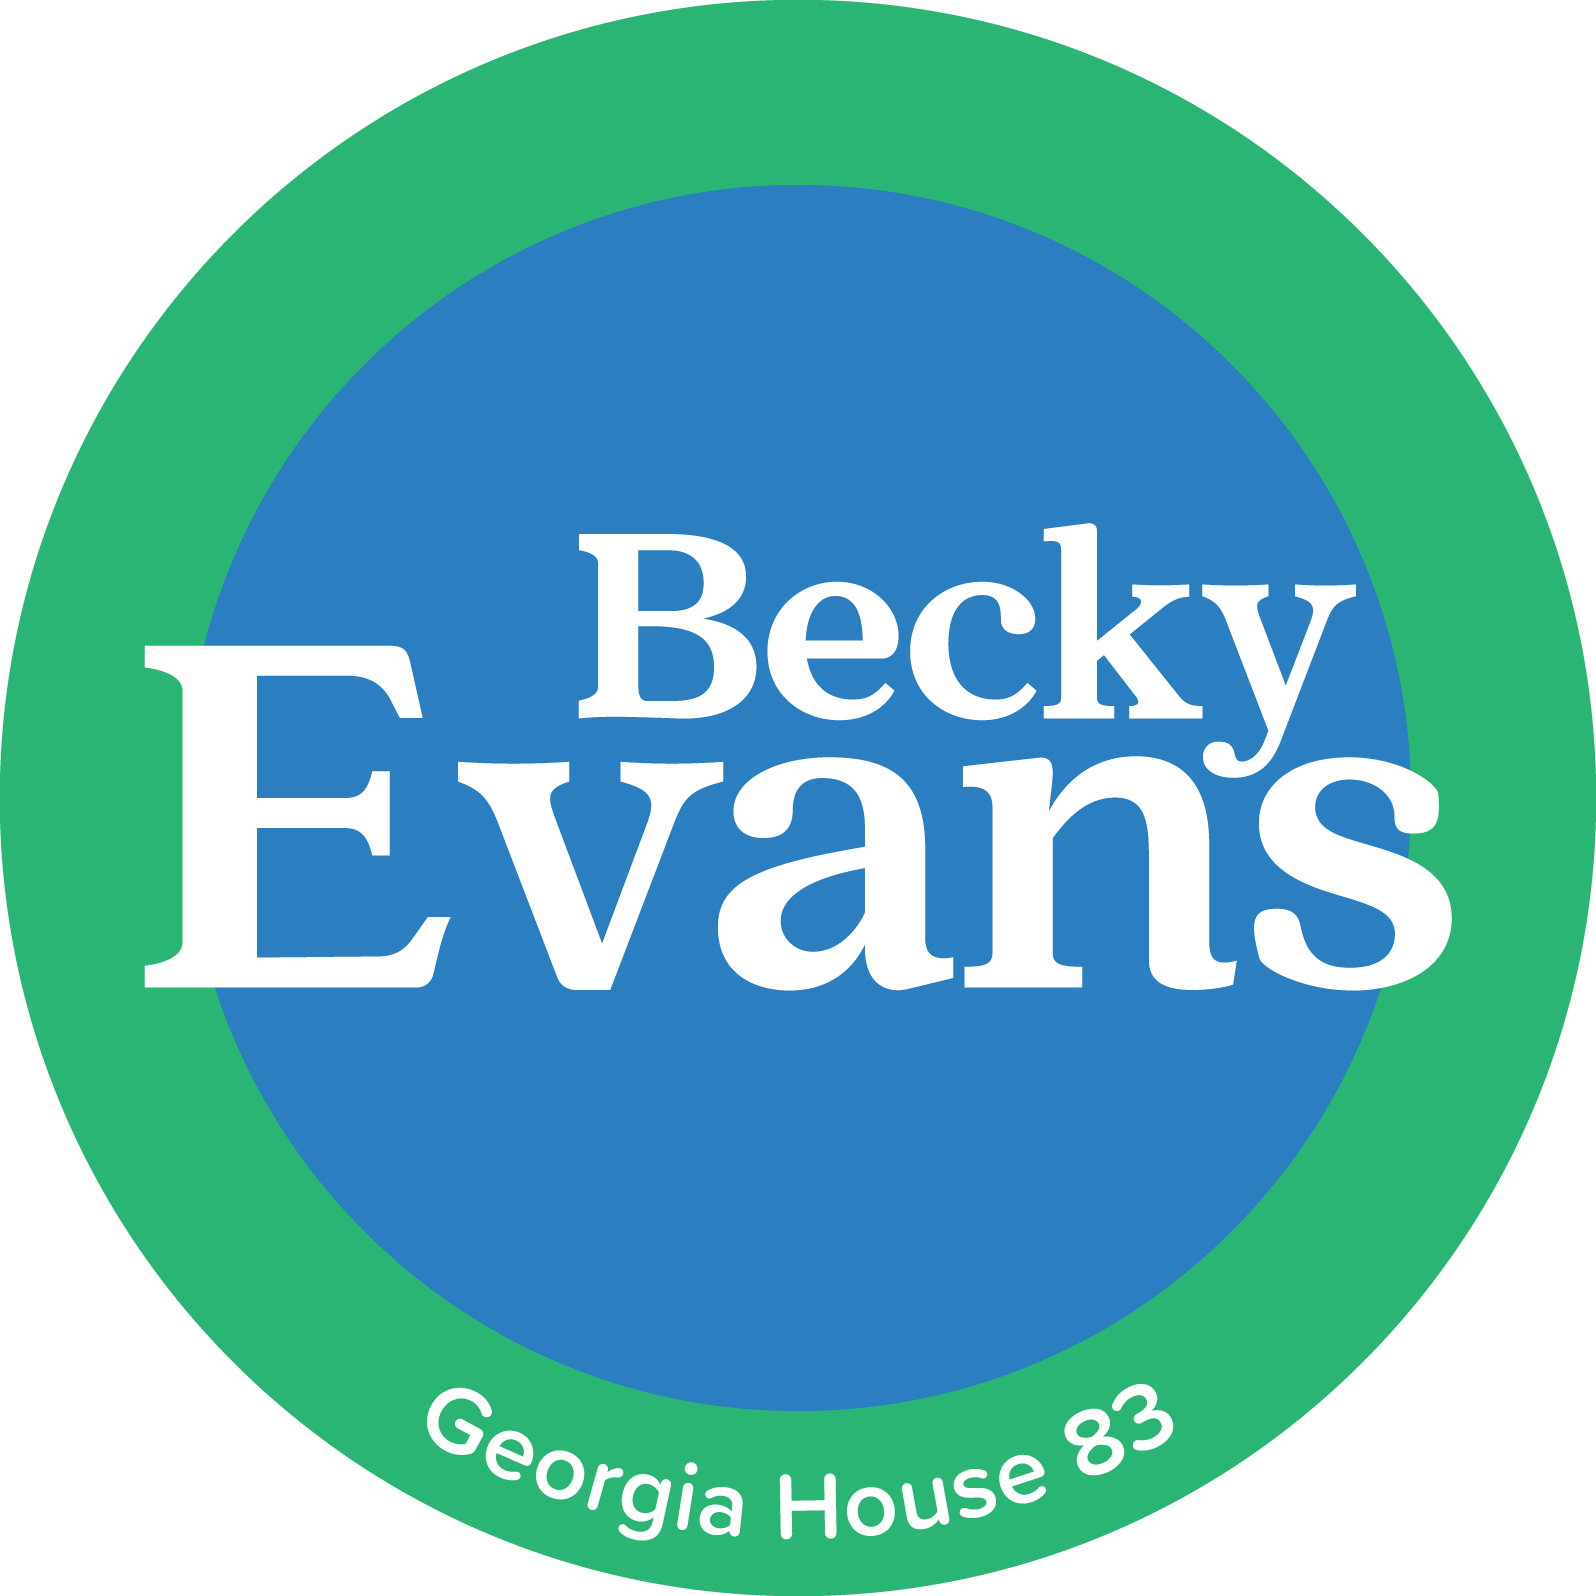 DHAA signs another sponsor – Becky Evans!